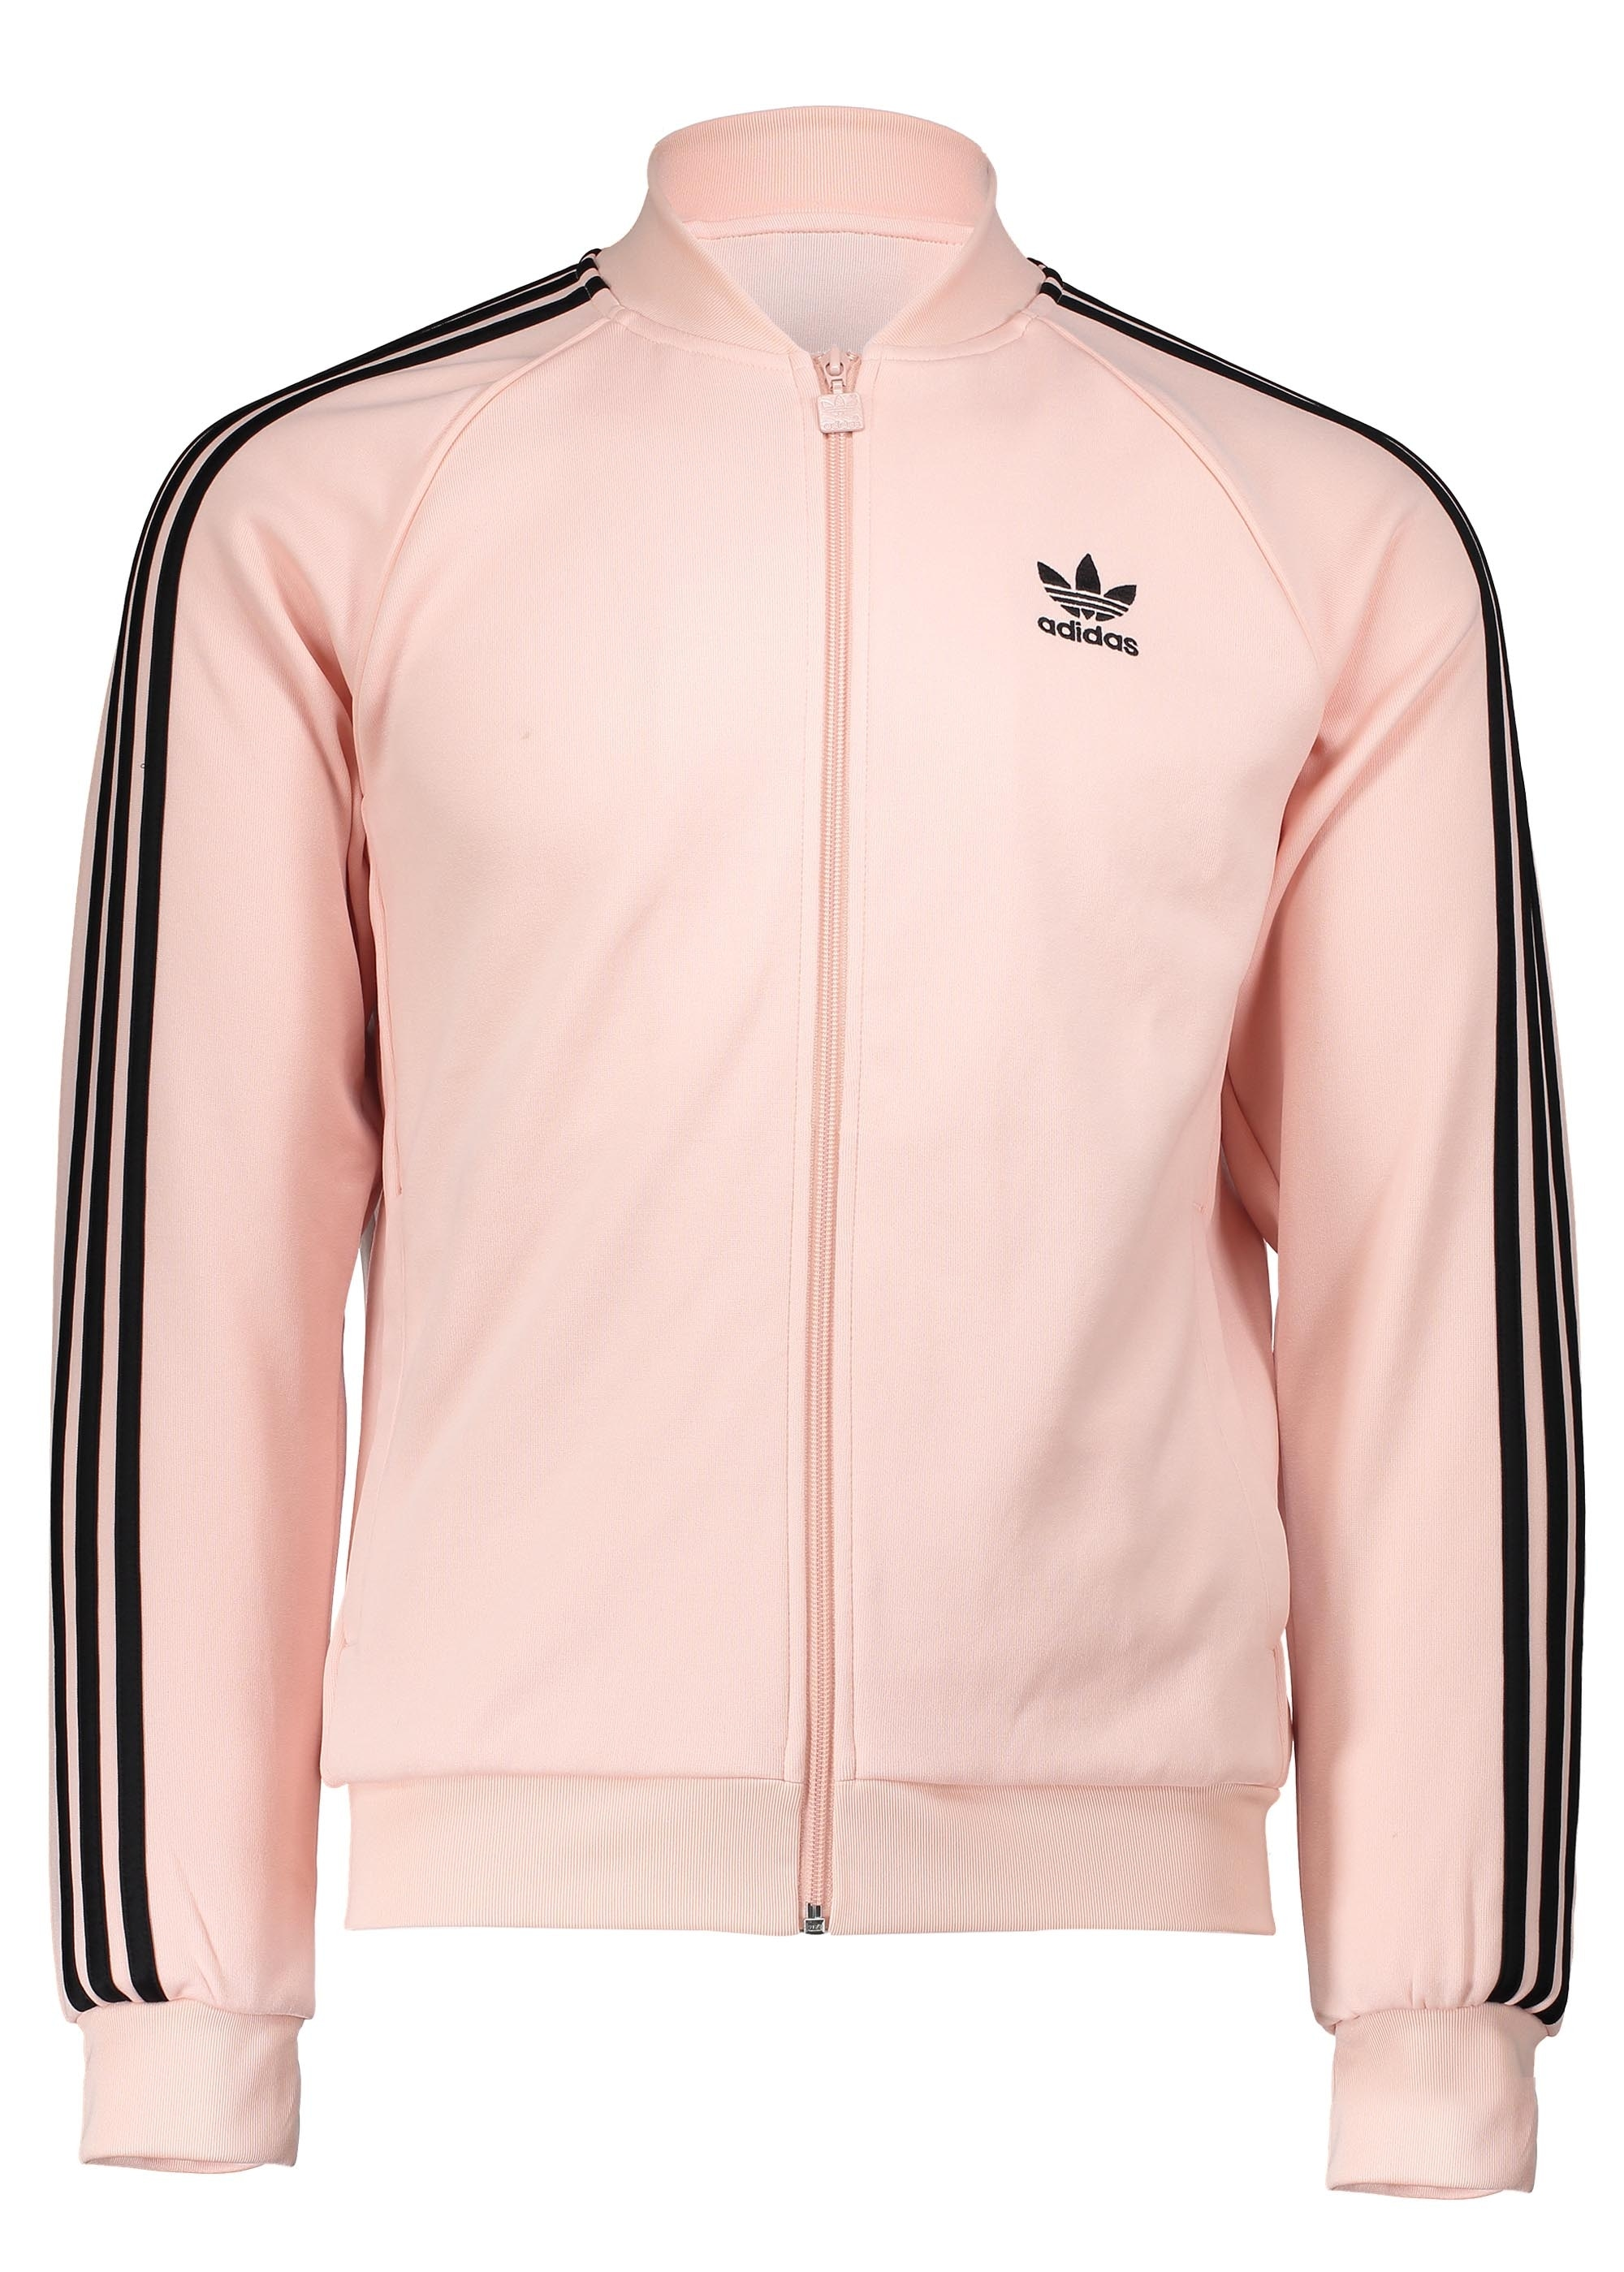 a76f26a29da5 adidas Originals Apparel SST Track Top - Vapour Pink - Jackets from ...